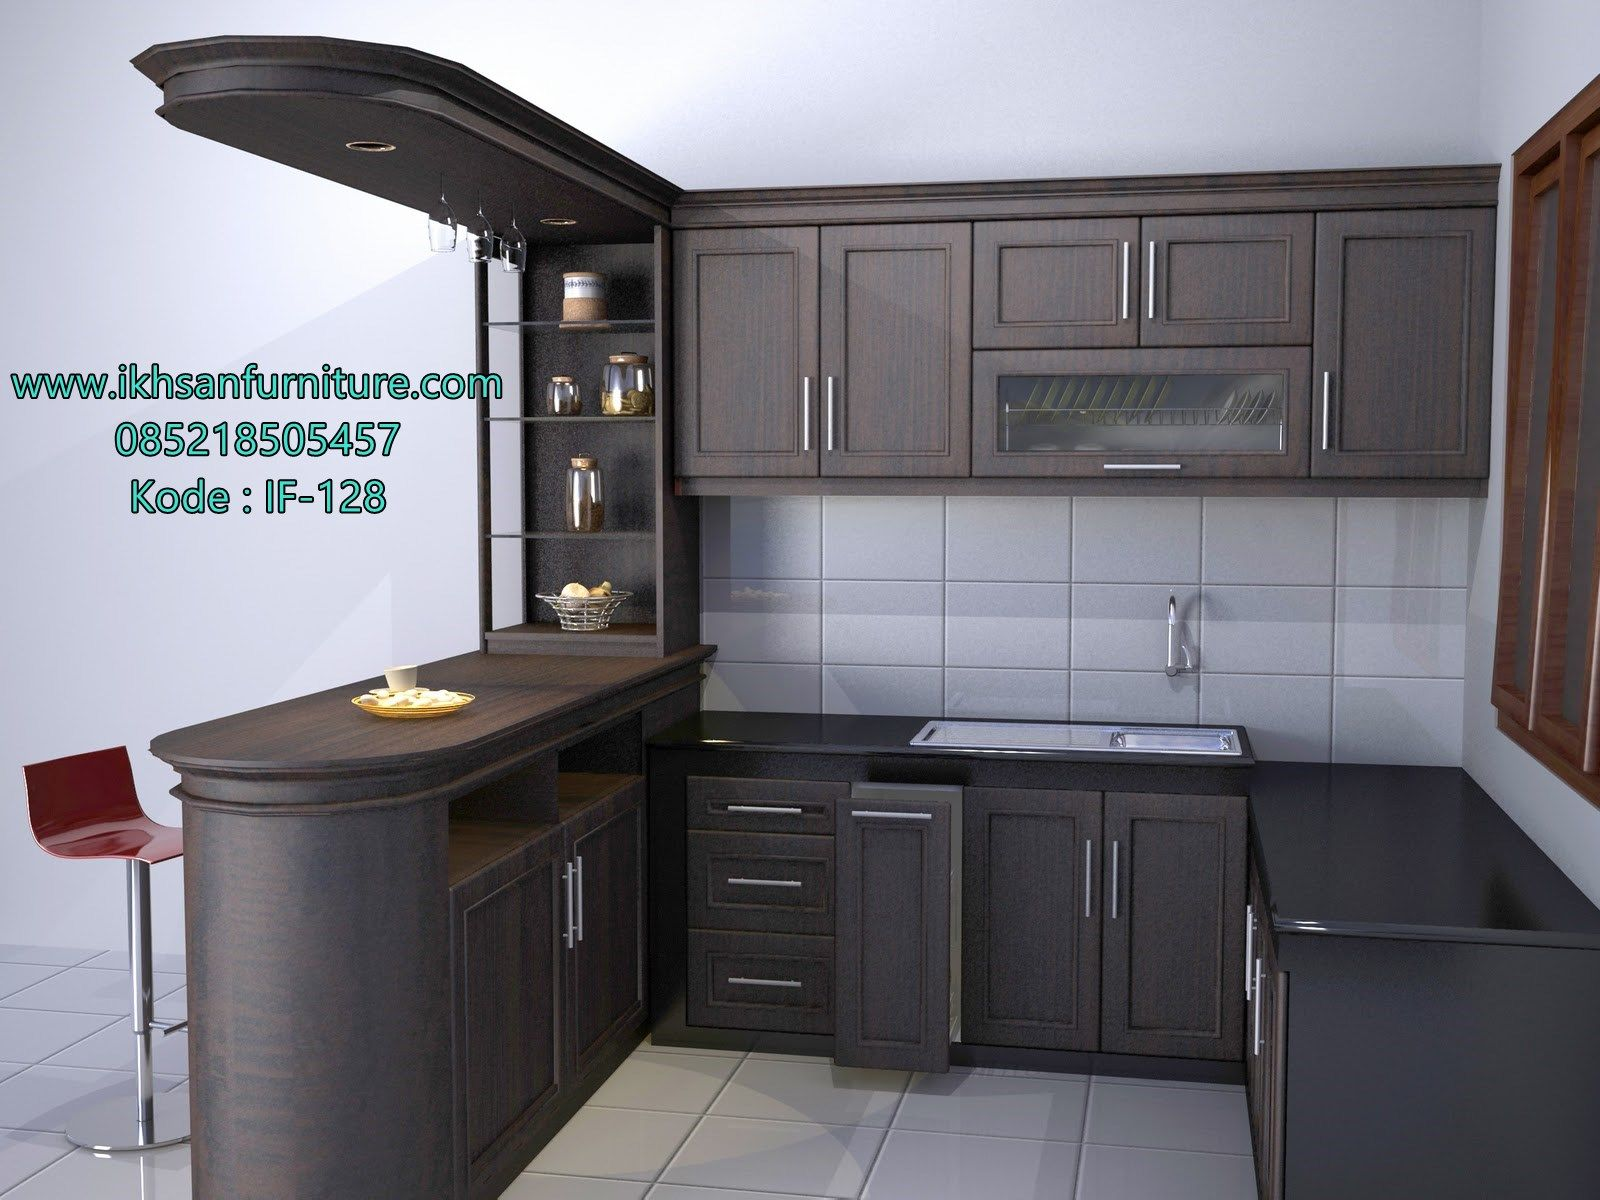 Jual kitchen set minimalis elegan model kitchen set for Model kitchen design